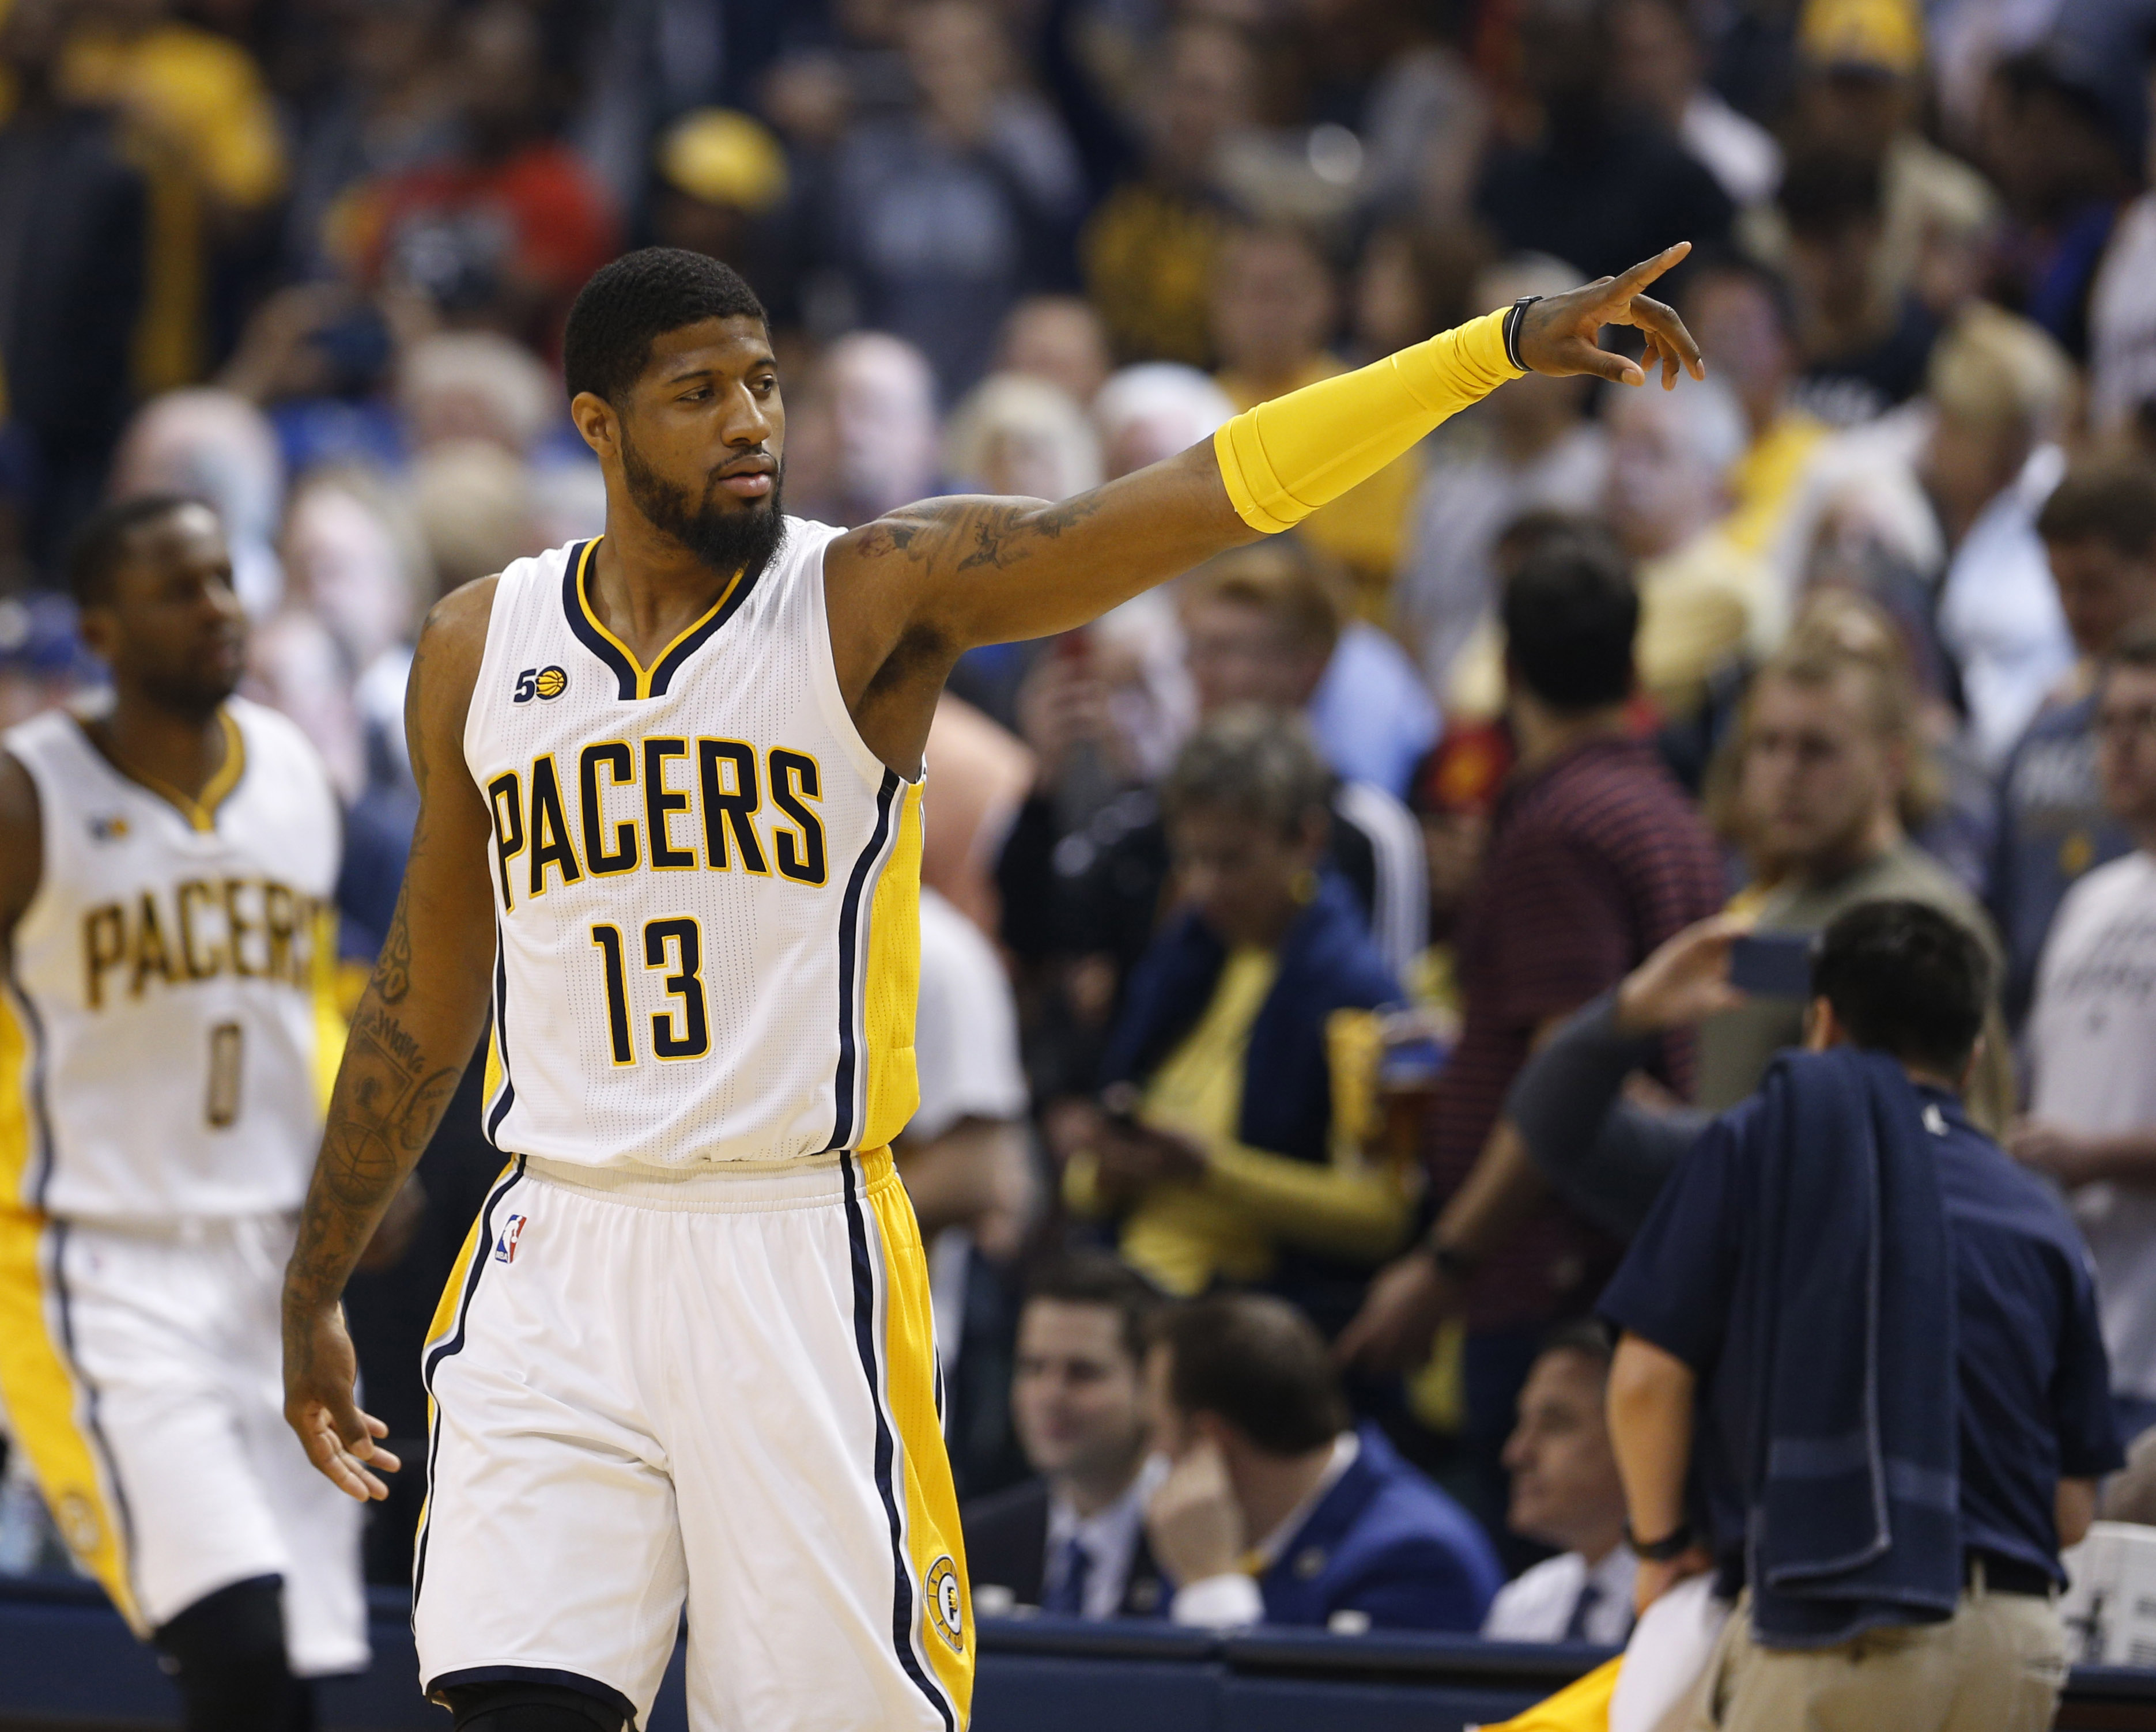 10027689-nba-playoffs-cleveland-cavaliers-at-indiana-pacers-1